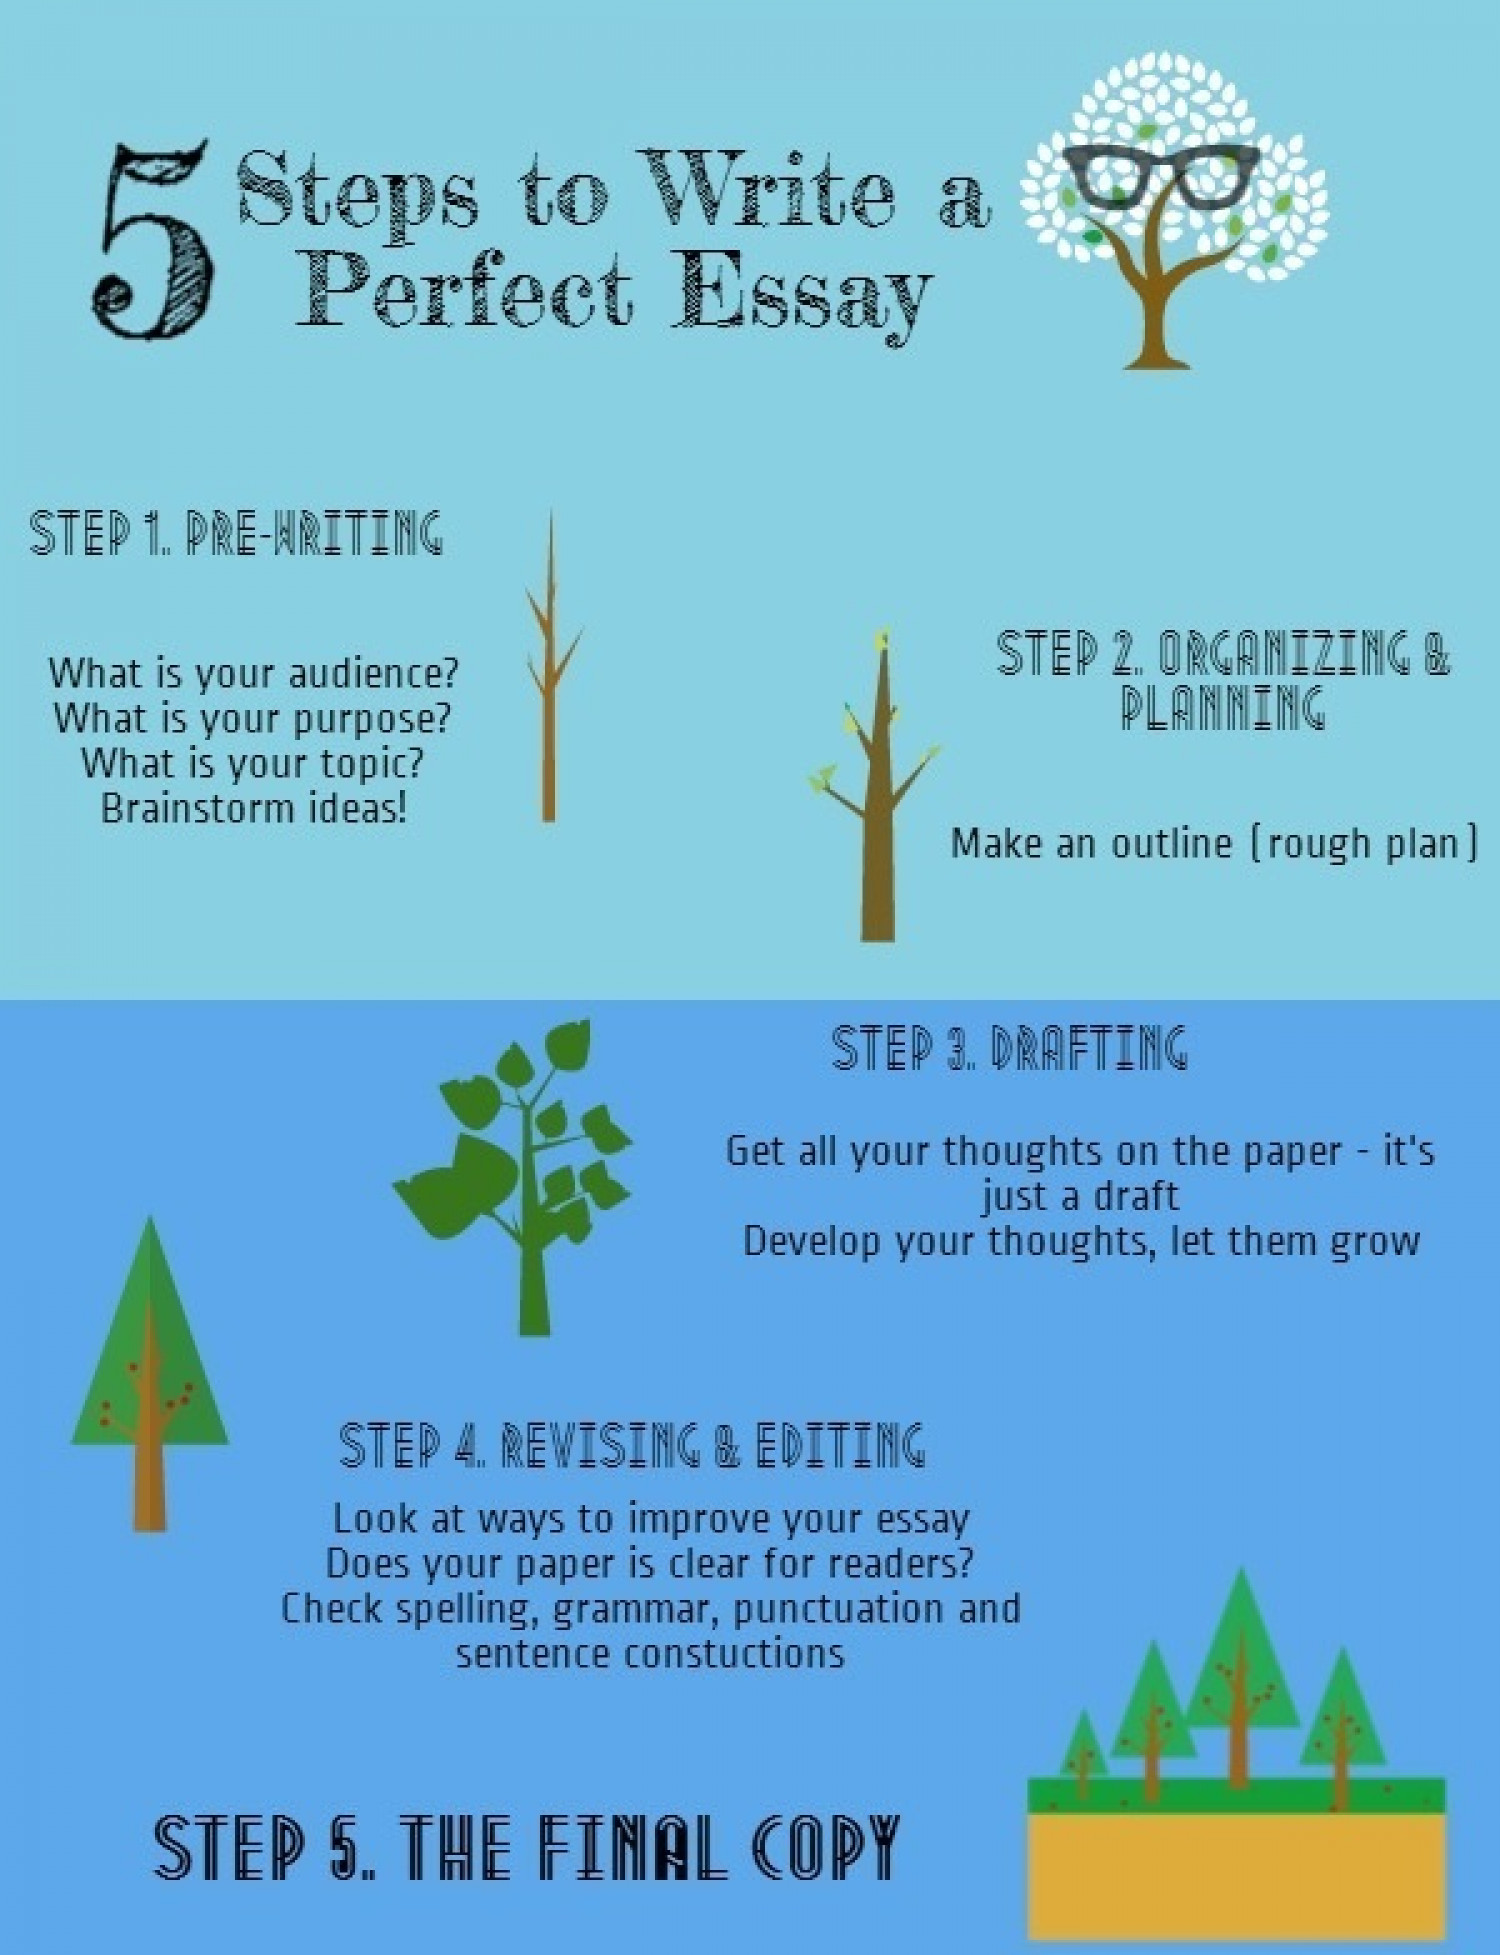 Essay good steps write